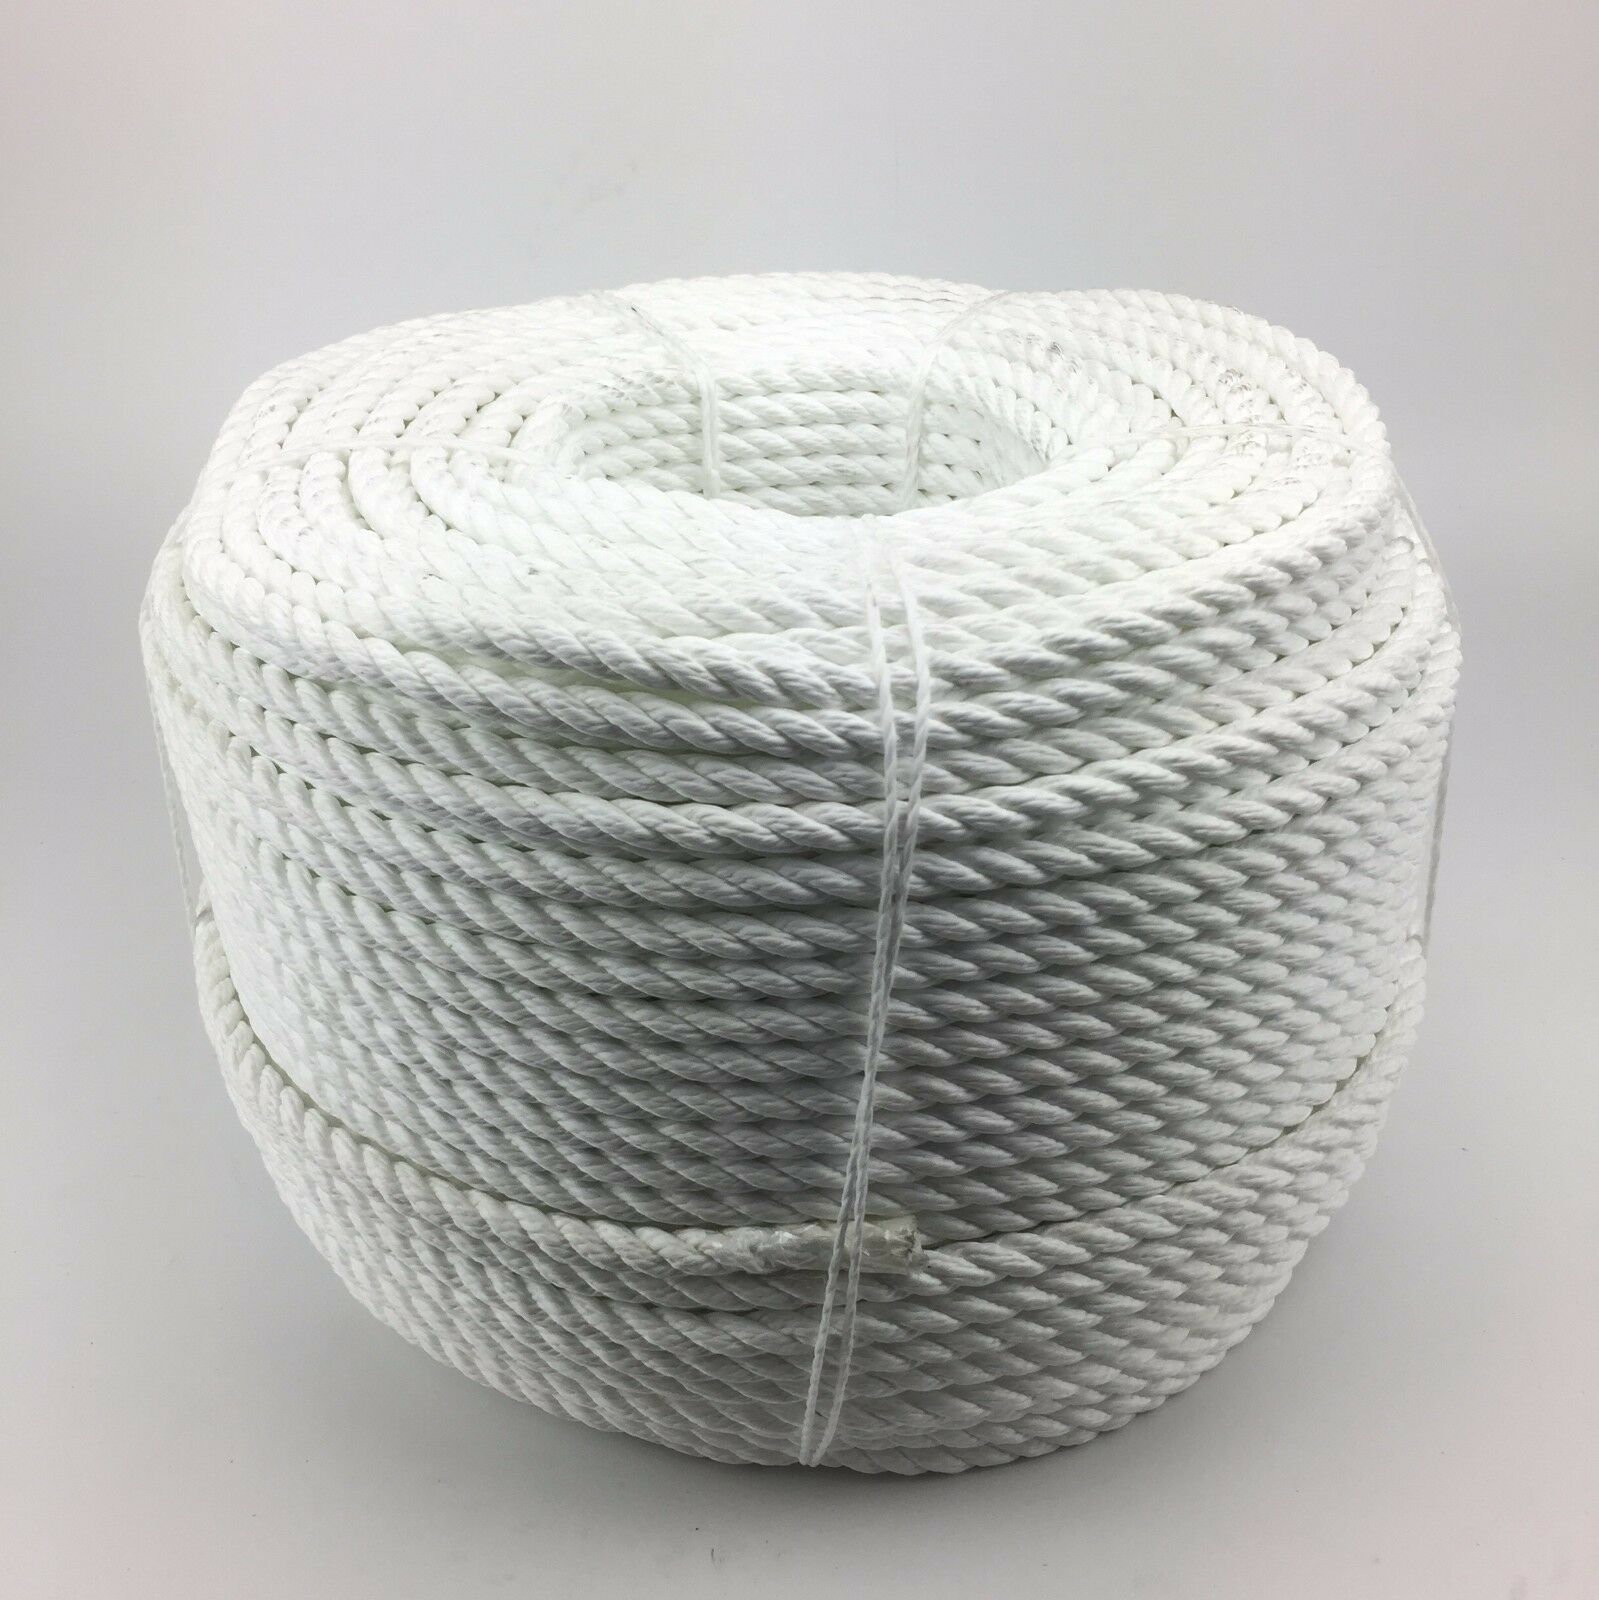 3 Strand White Multifilament 8mm (Floating Rope) x 220m Coil Boats Yachts